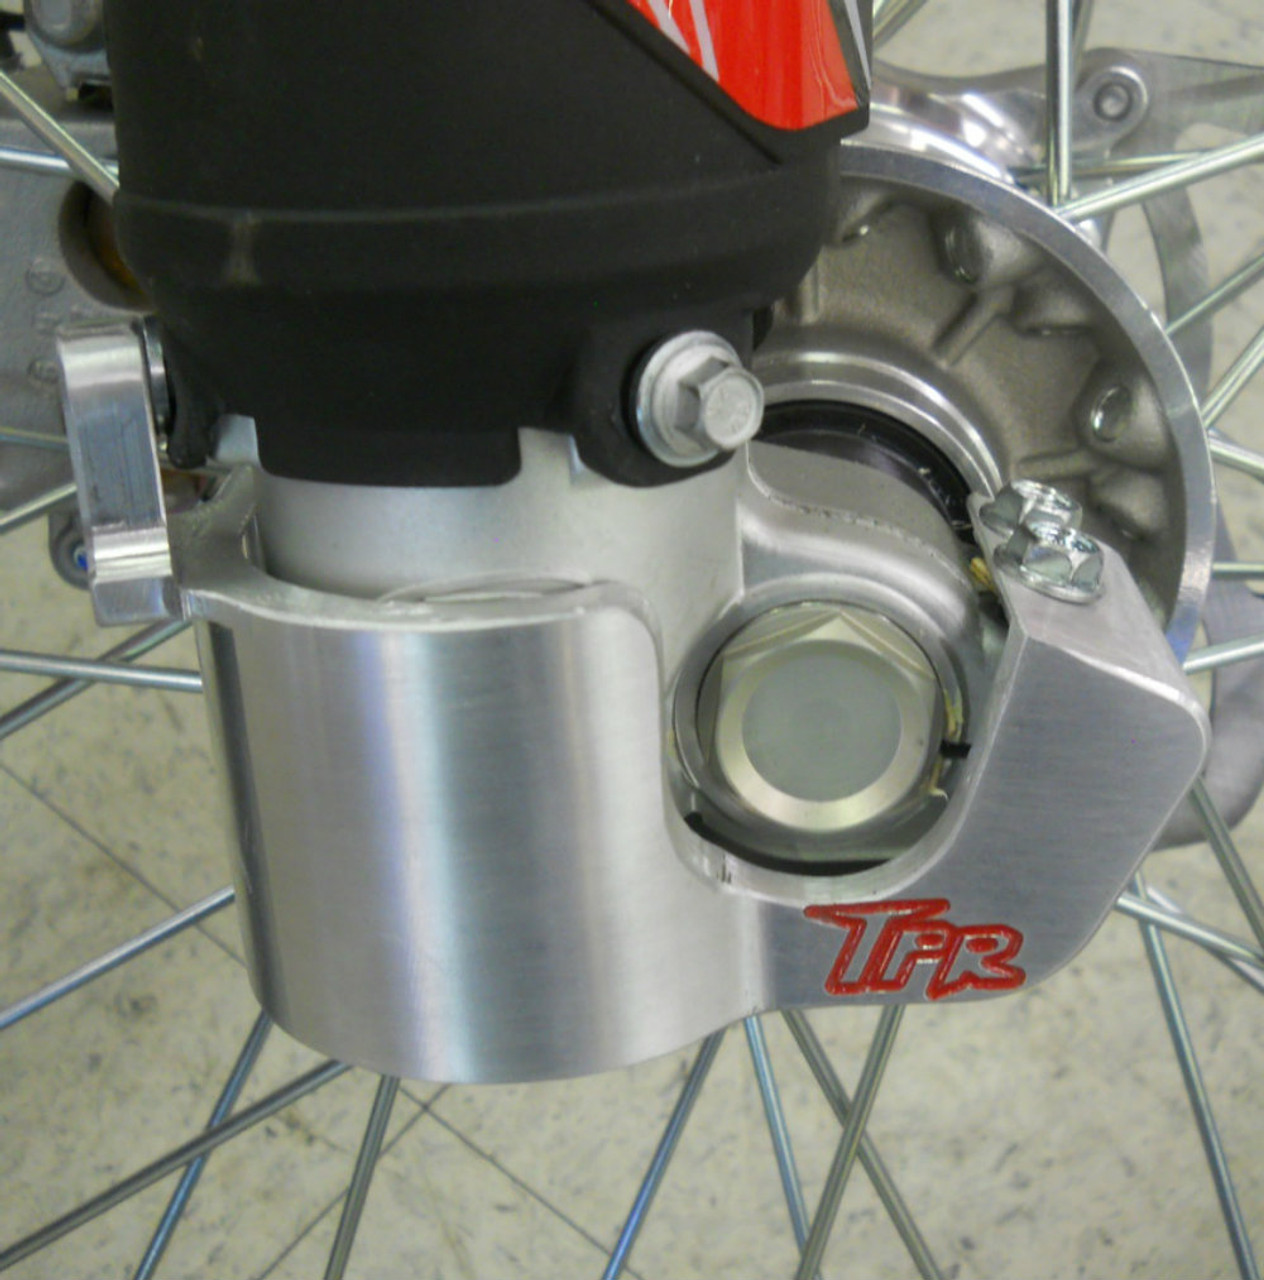 Topar Racing Lower Fork Leg Guard for 2016-2018 BETA - All Enduro, 2T, 4T, RR, RR-S, RS with SACHS Forks Shown On Bike - Side View